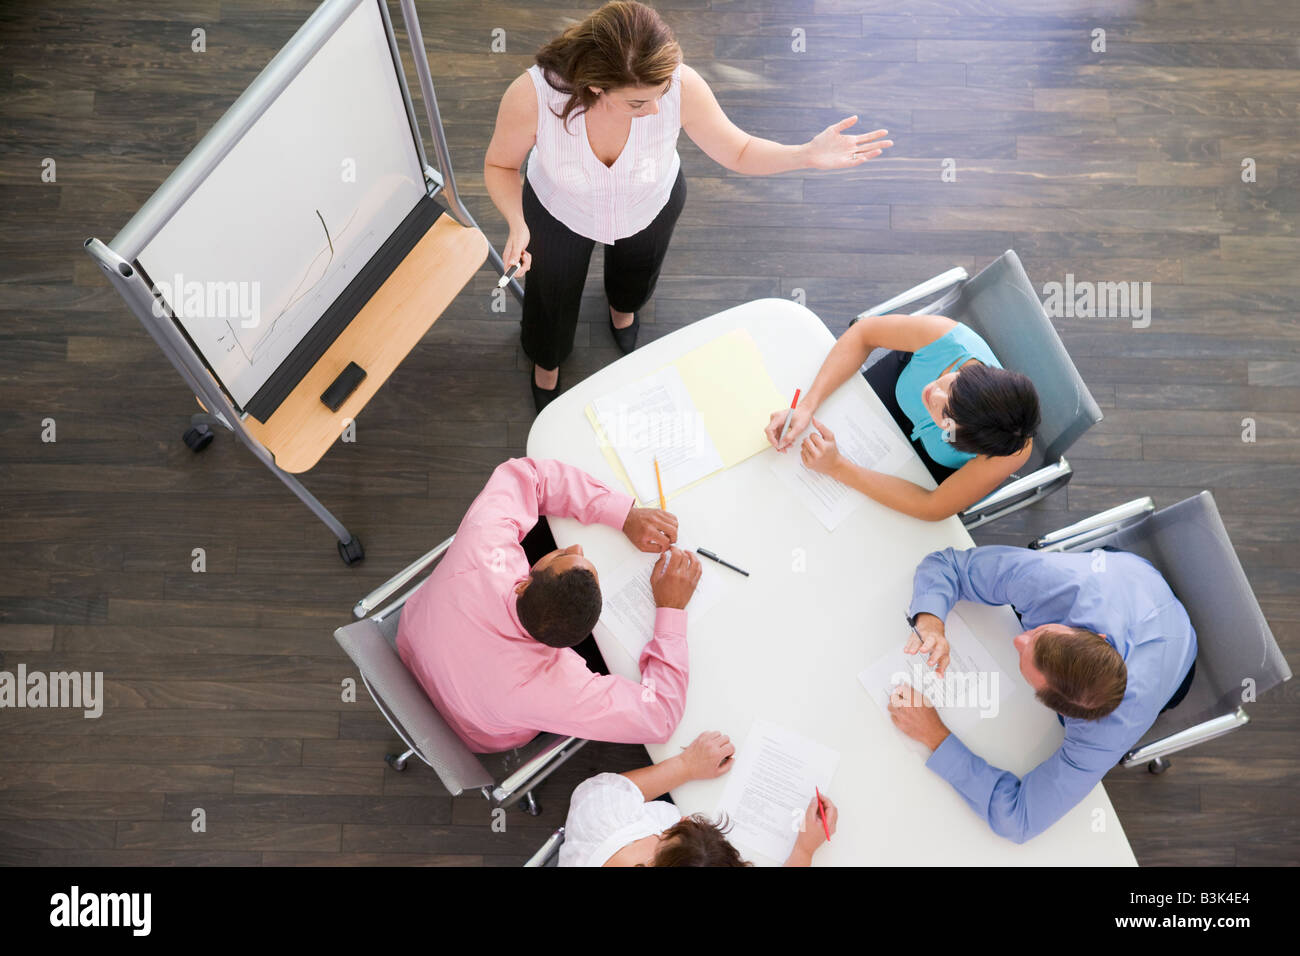 Four businesspeople at boardroom table watching presentation - Stock Image